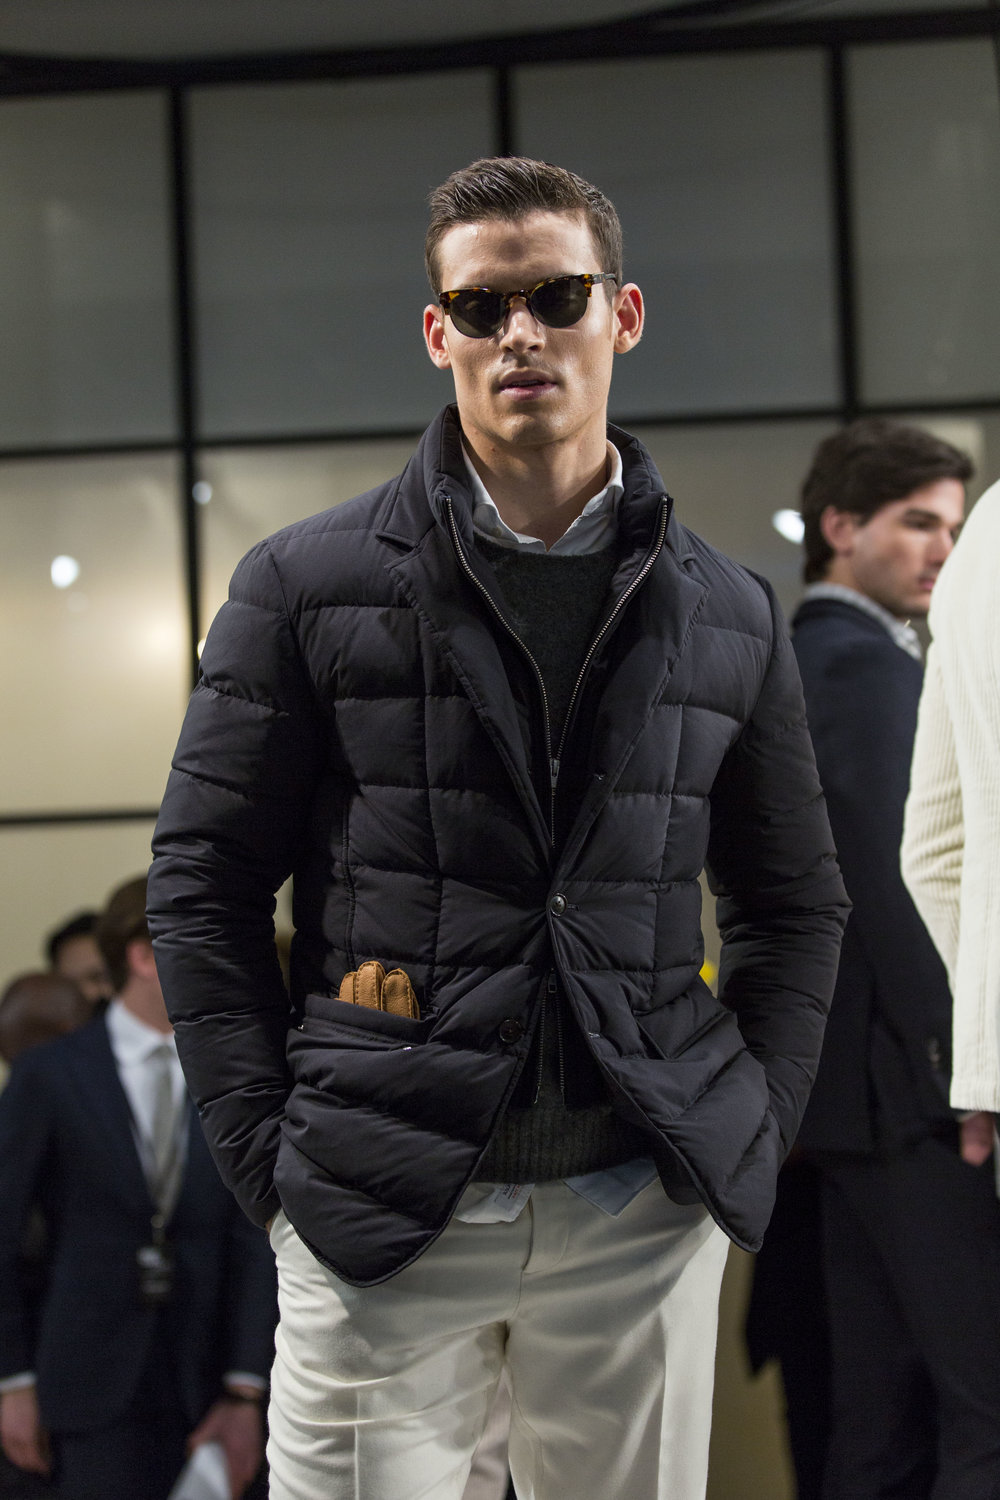 SUITSUPPLY-FALL -WINTER-NYFWM2018-MENS-COLLECTION- AW18-NYFWM-5.jpg